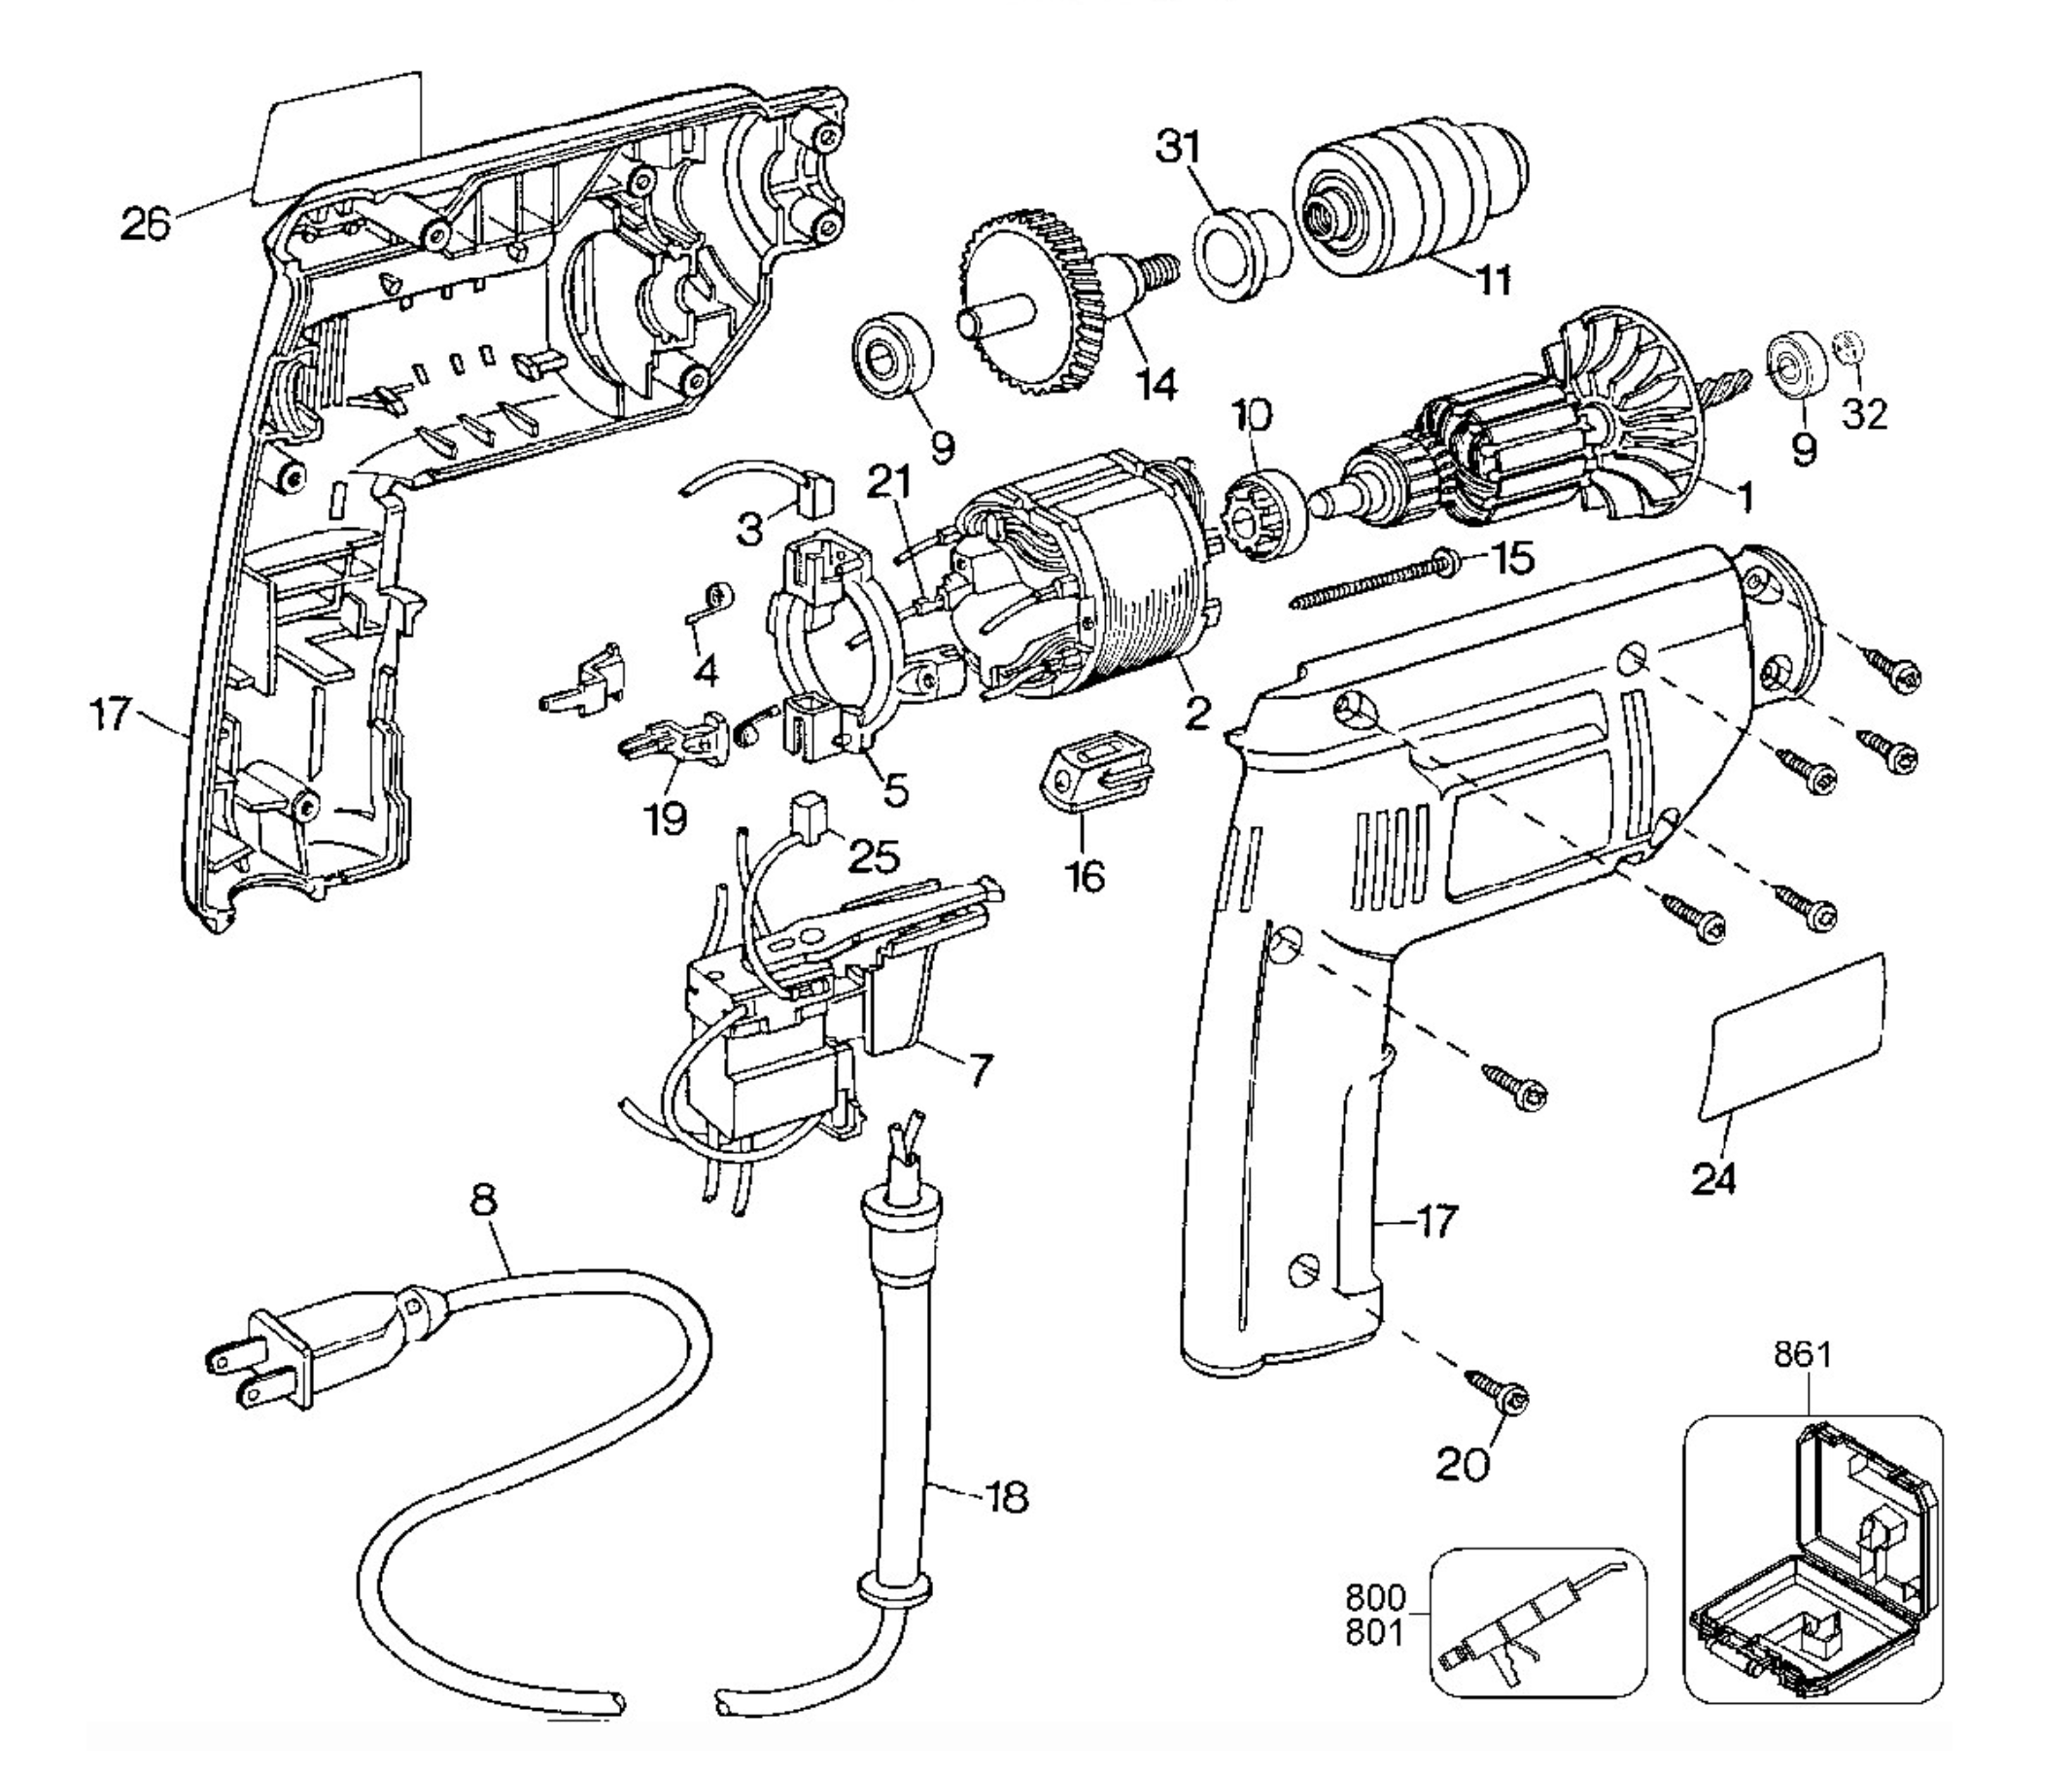 Exploded View Drawing